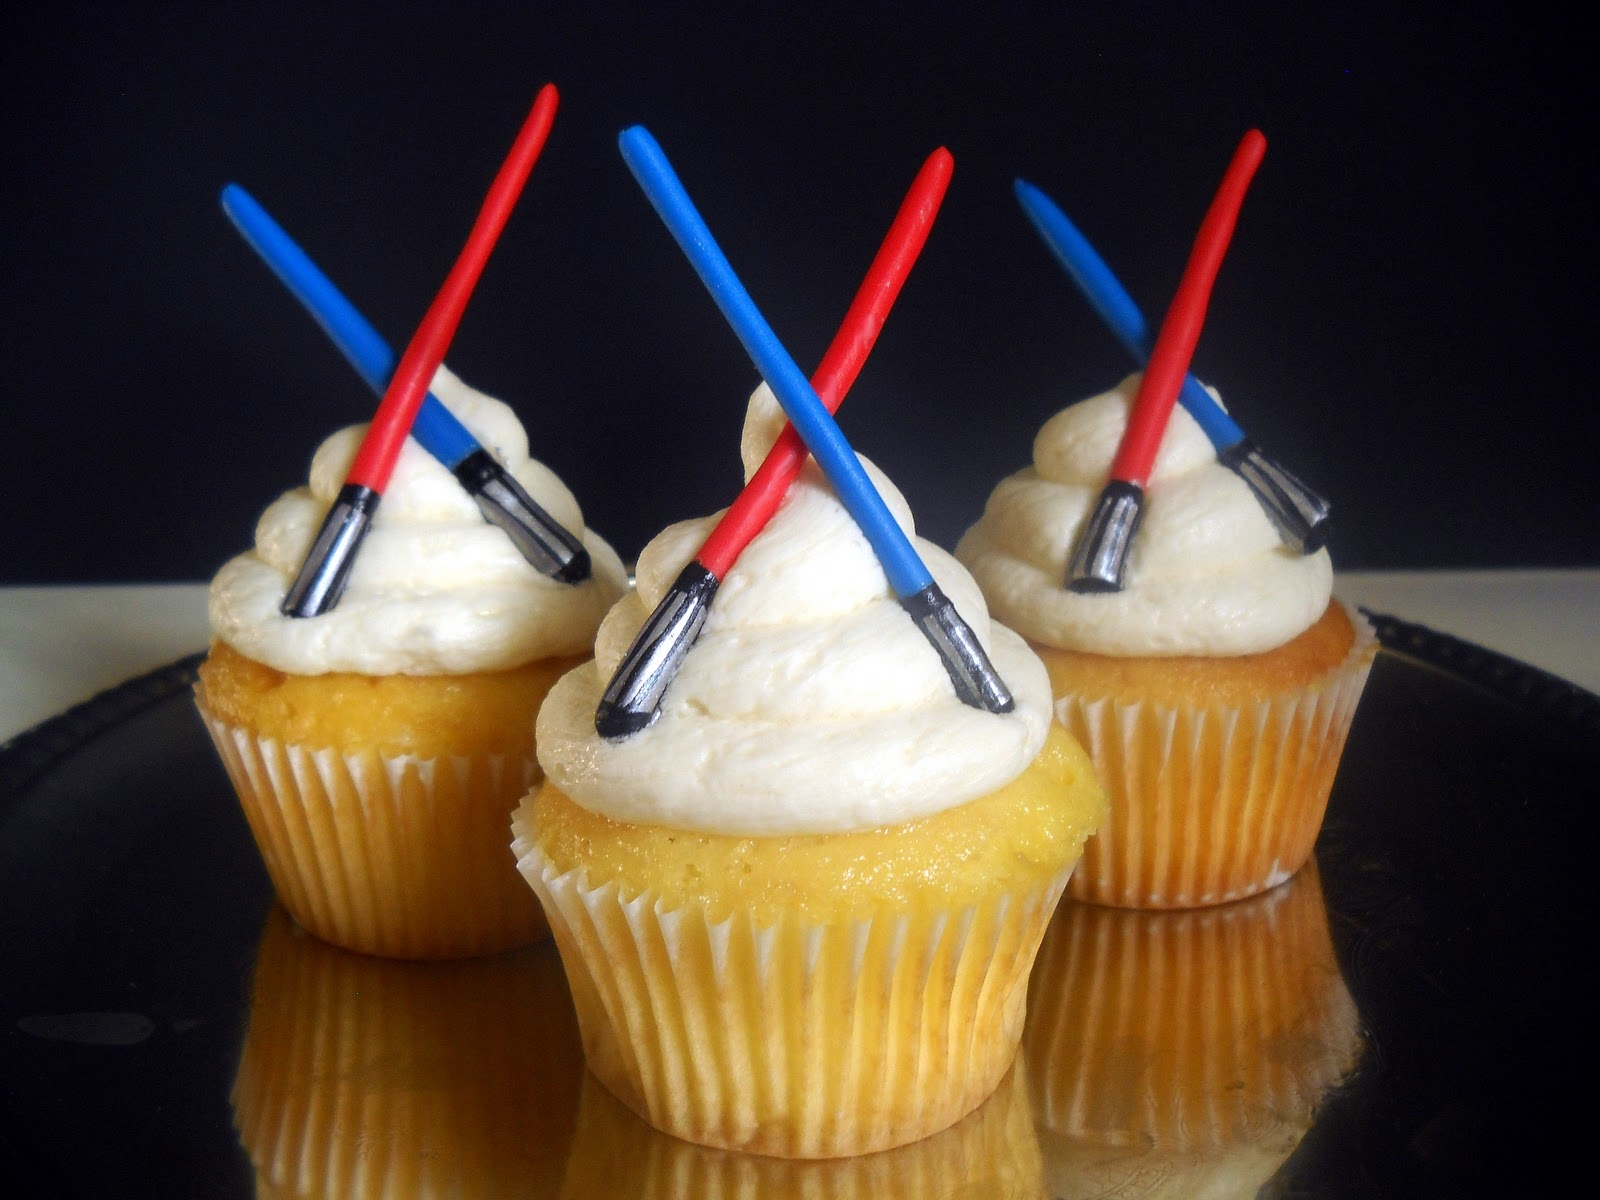 Fondant or gum paste Star Wars lightsabers make perfect cupcake toppers